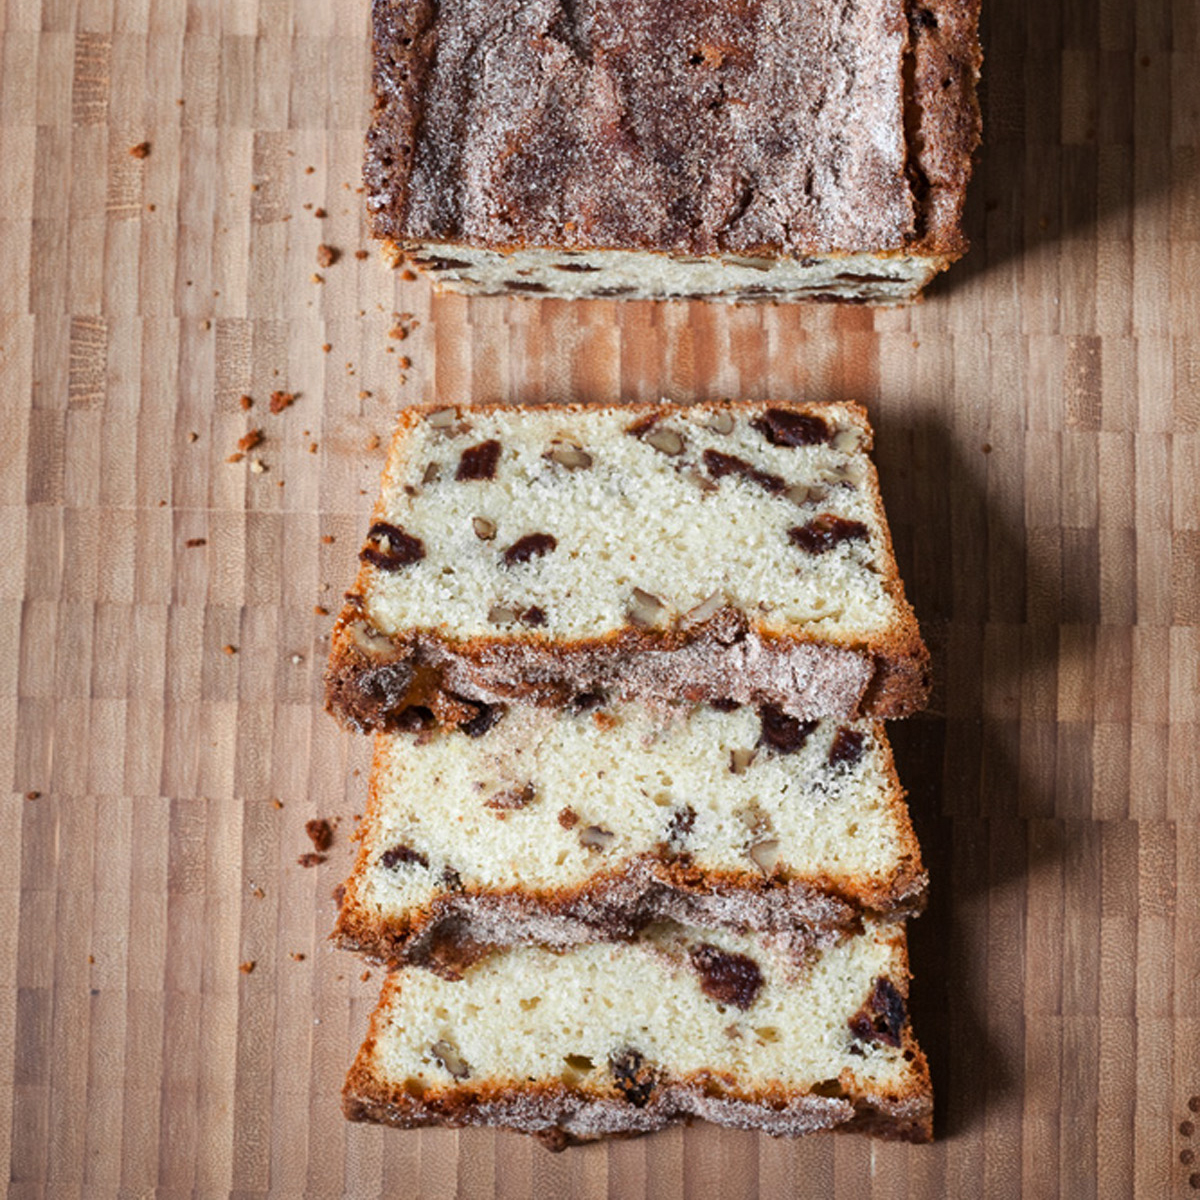 201004-r-strawberry-pecan-bread.jpg